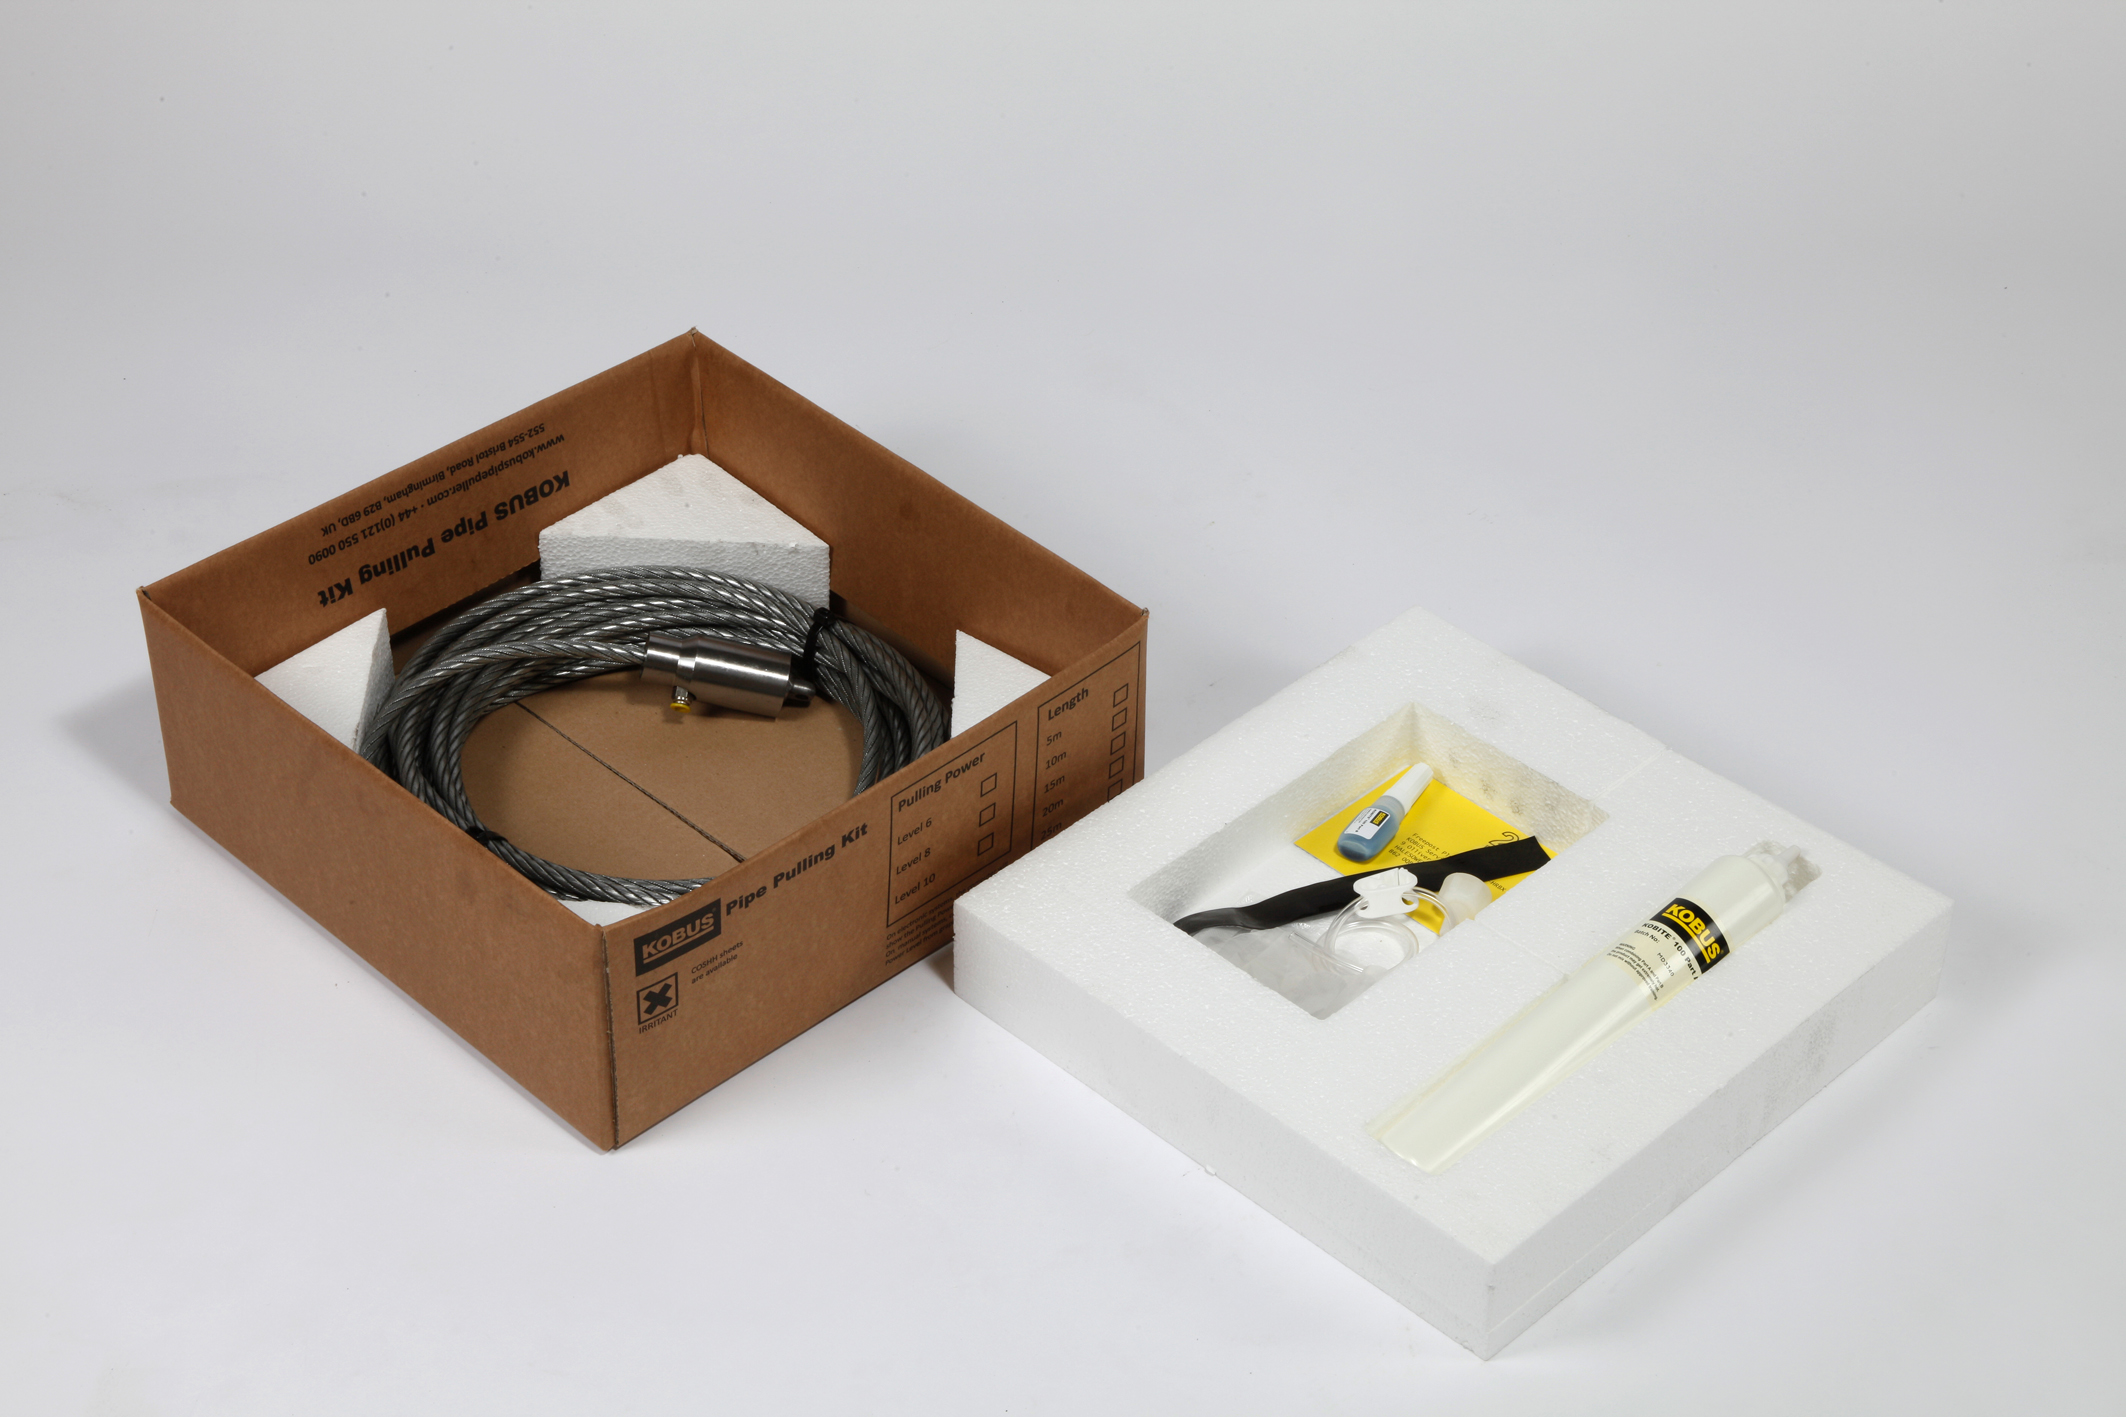 Pipe Pulling Kit including KOBITE Bonding Compound Image